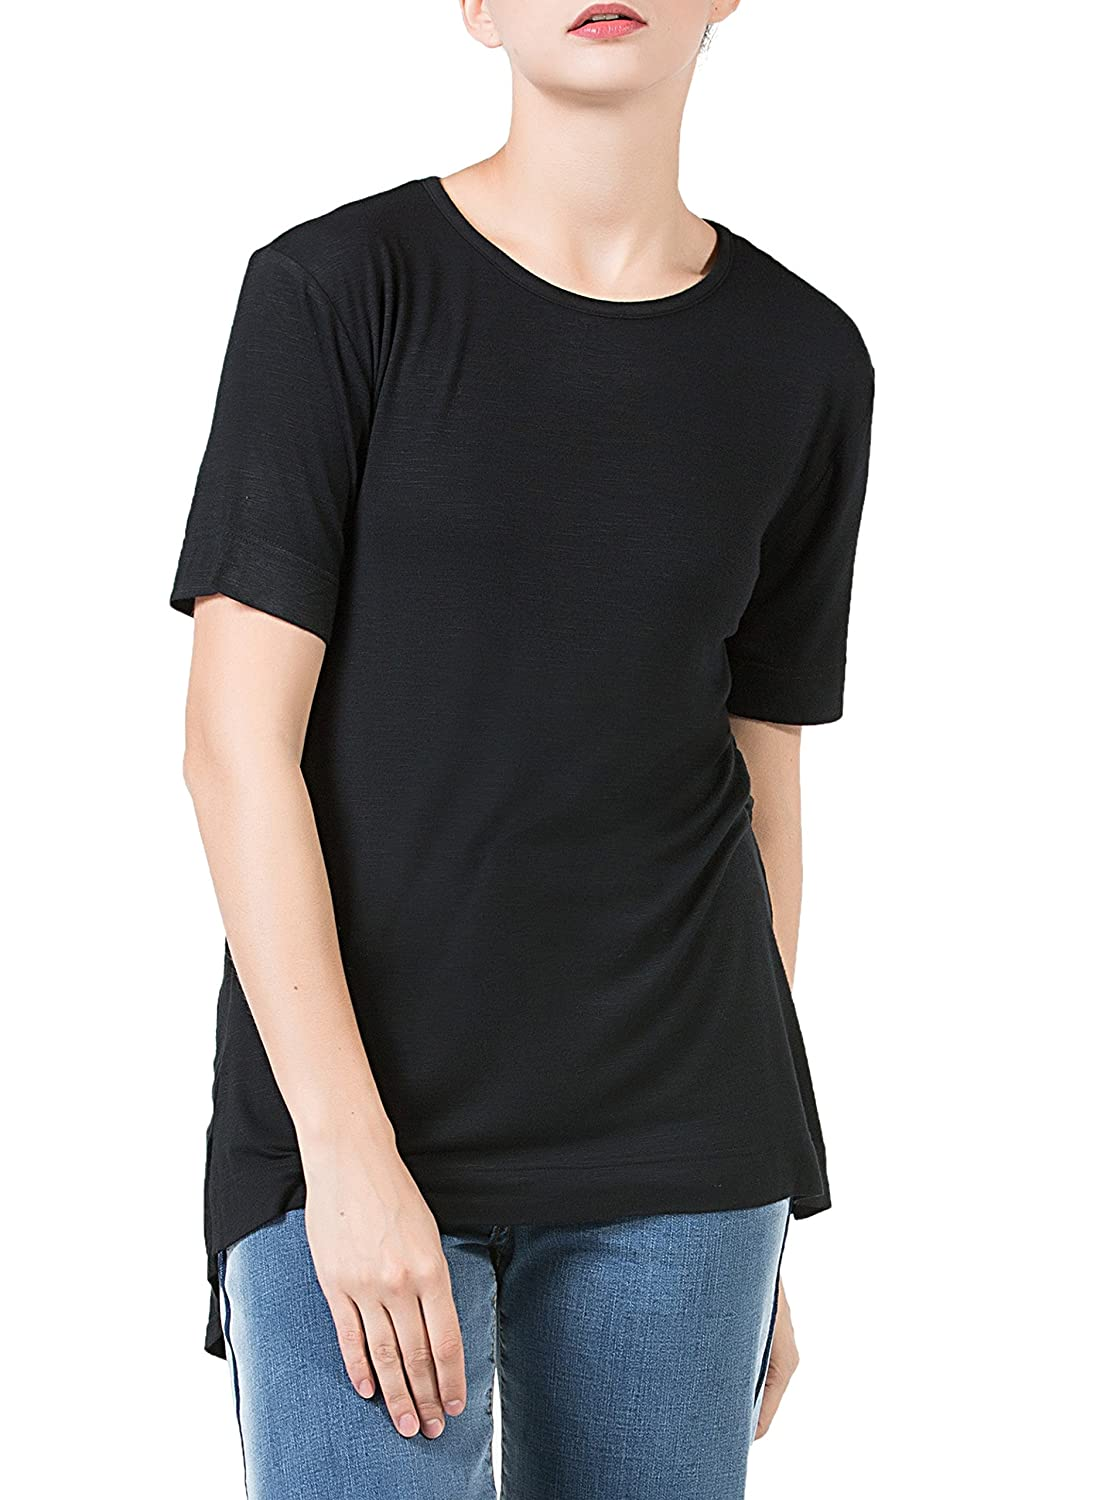 ec36a18a2 Supersoft, breathable and stretchy: The basic tees for women made from 95%  slub cotton 5% spandex lightweight skin fabric, very comfortable for wear